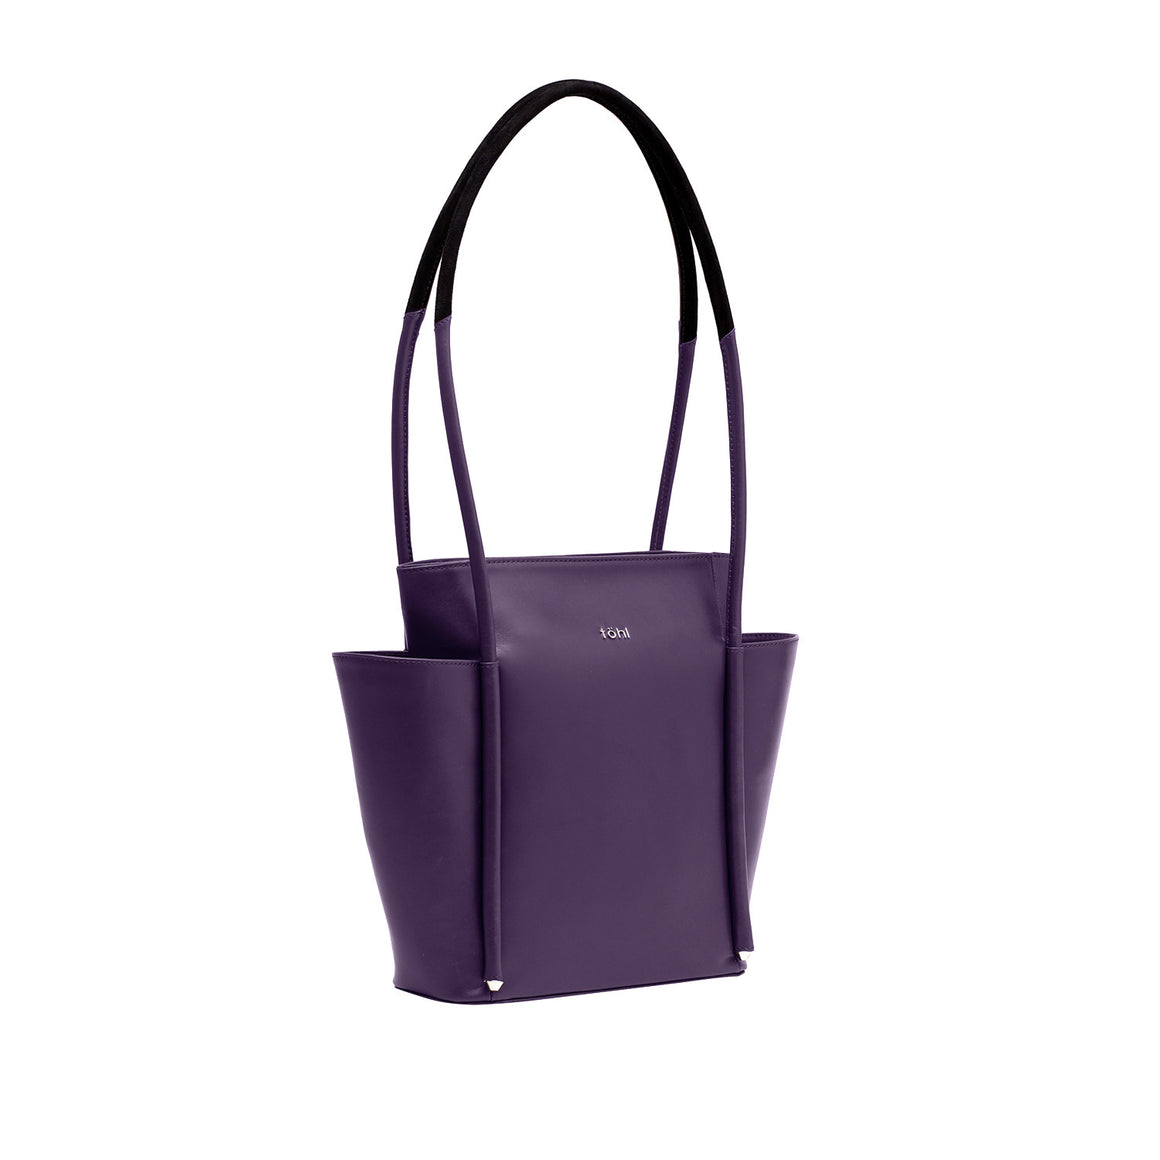 SB 0020 - TOHL PERRY WOMEN'S SHOPPER - AUBERGINE